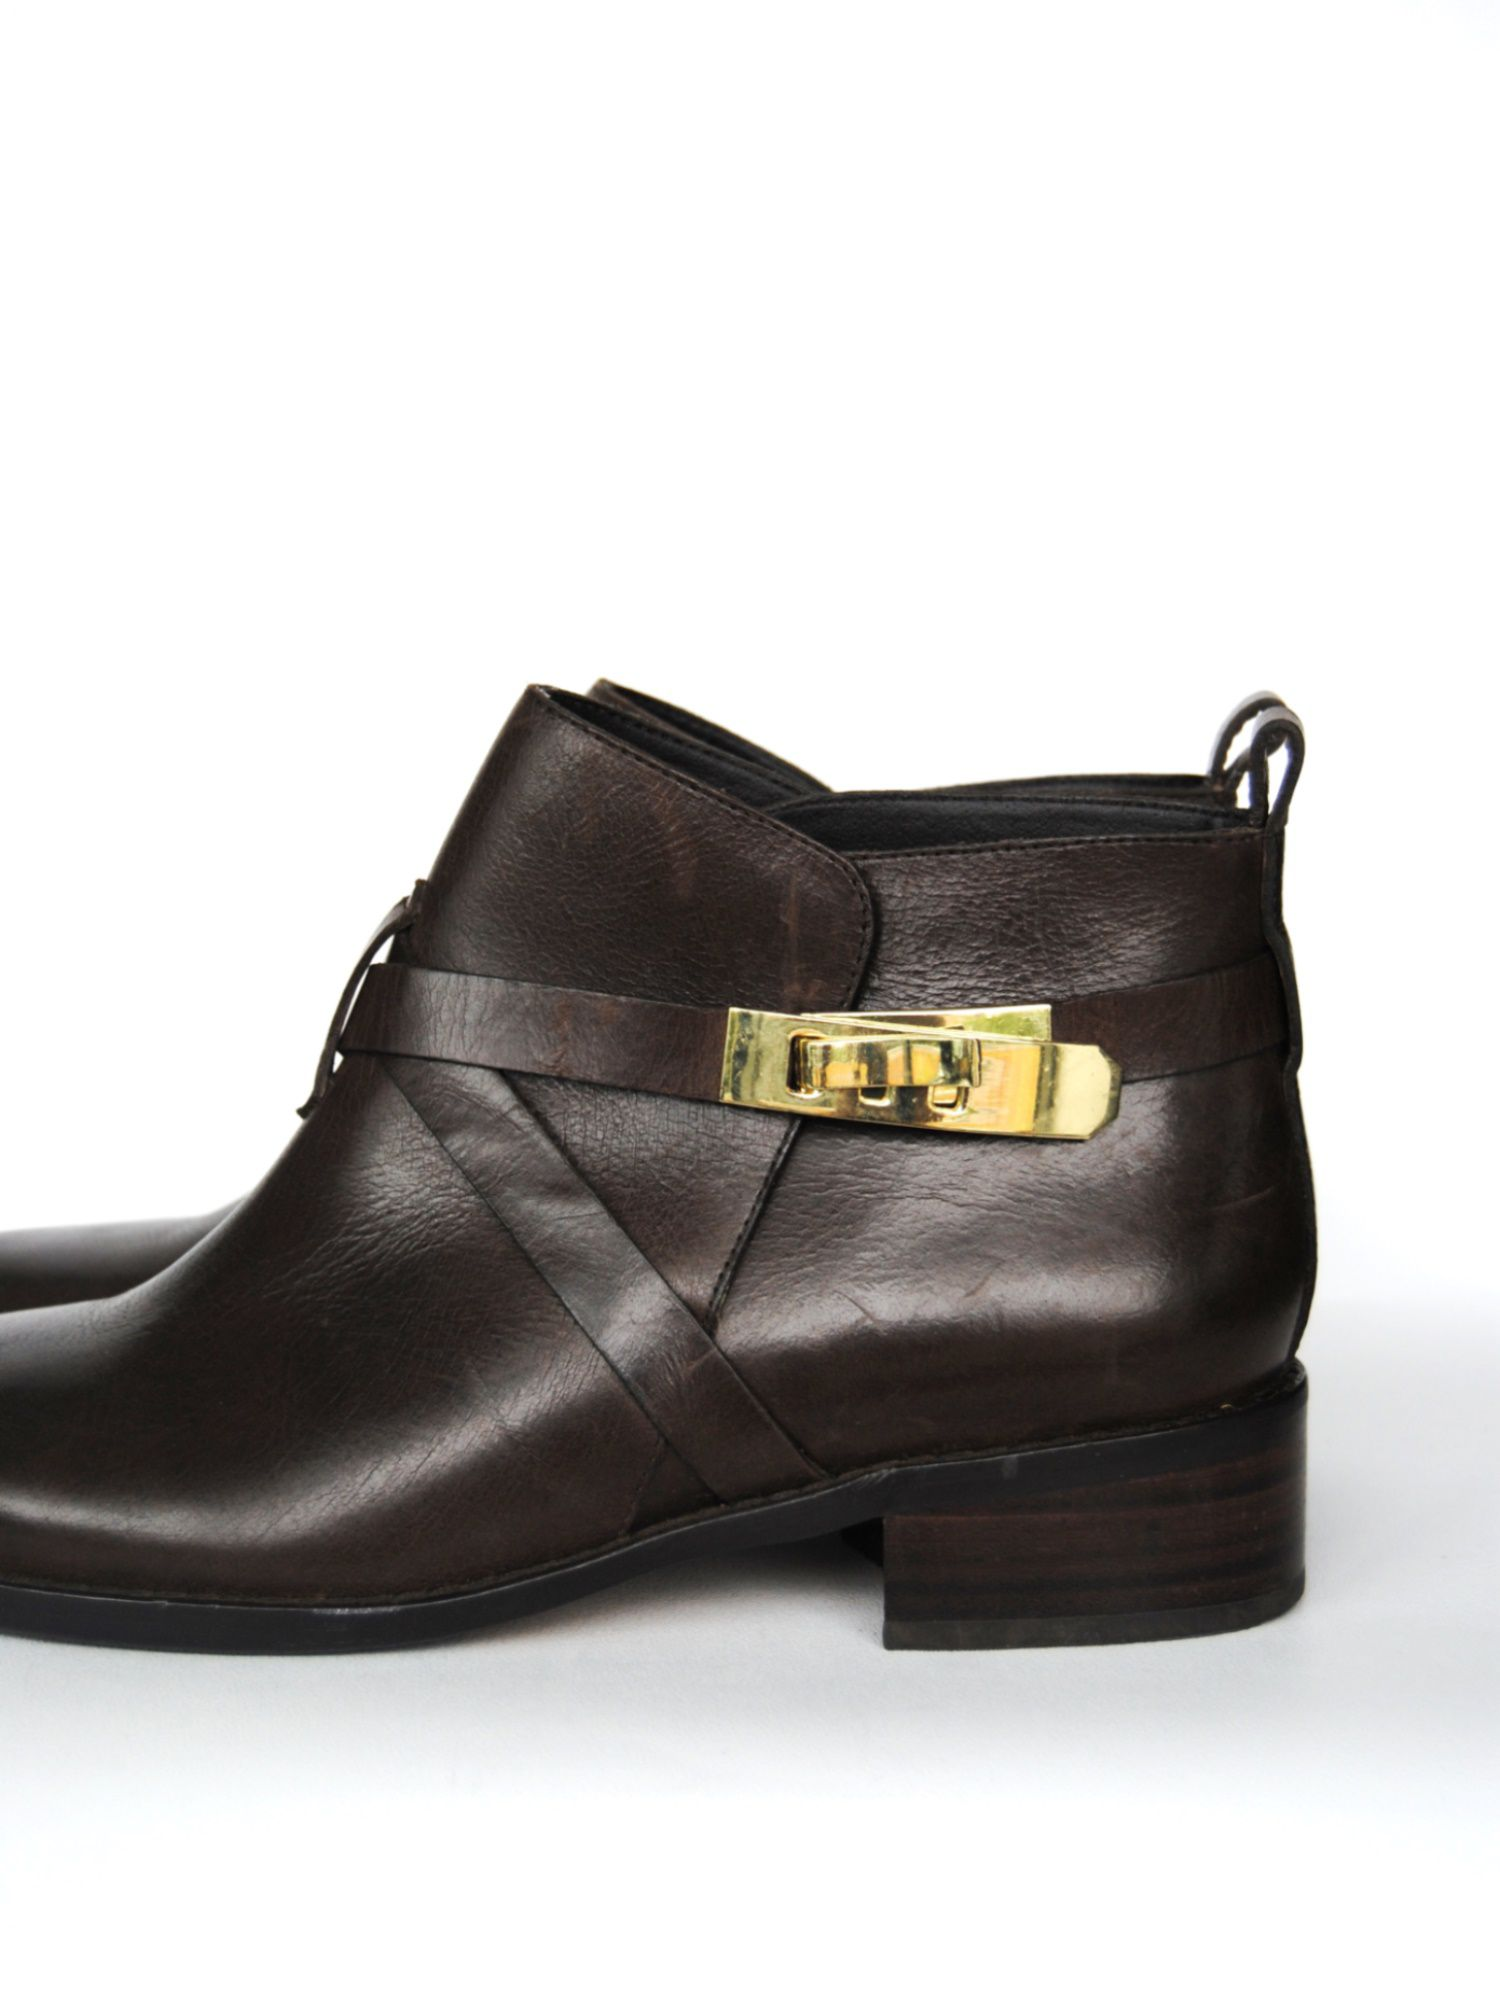 French Connection Leather Yuri Chelsea Boots in Brown (Black)